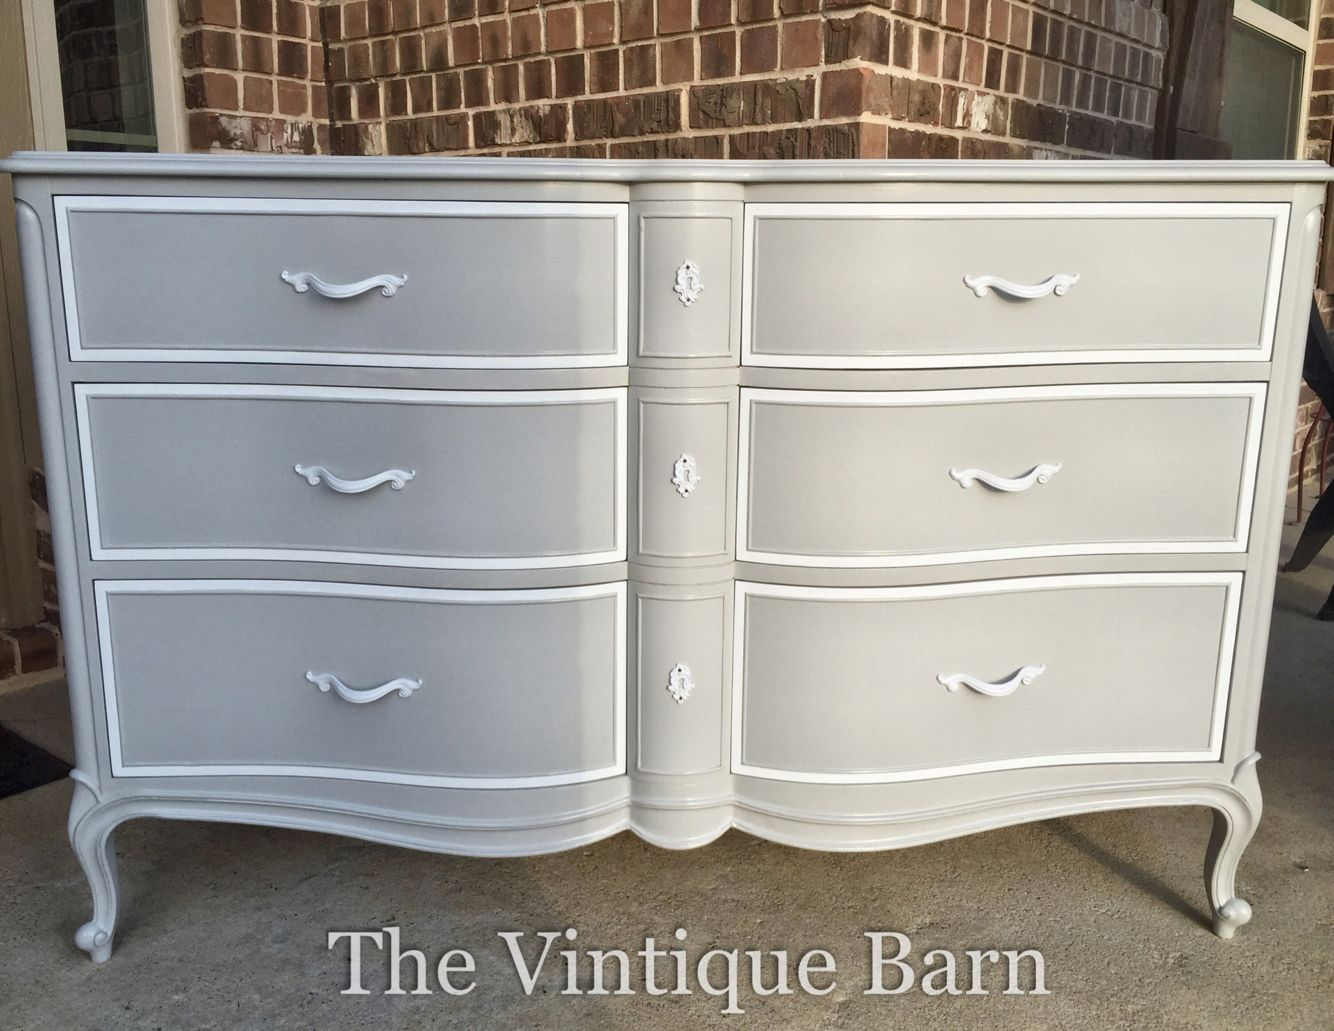 Drexel French Provincial Dresser Painted With General Finishes Milk Paint Seagull Gray And Snow White